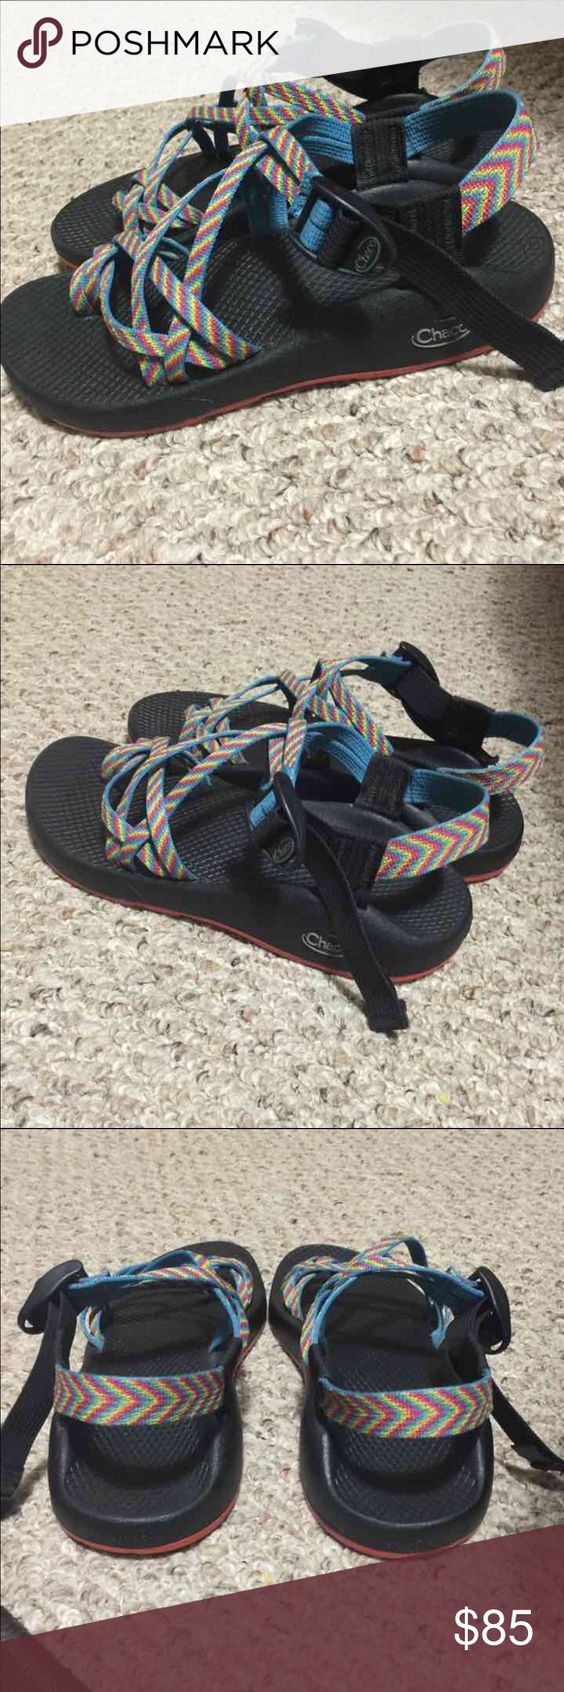 CHACOS ZX/2 Double Straps Sandals Vibram Fiesta CHACO brand, highly sought after color. Fiesta rainbow. Double strap and toe strap. Women's size 8. Vibram bottoms. Excellent preowned condition, I just don't care for the toe strap, my loss is your gain. I ship fast. Thank you for looking :) NOT ELIGIBLE FOR BUNDLE DISCOUNT. Thank you!!!! Chacos Shoes Sandals